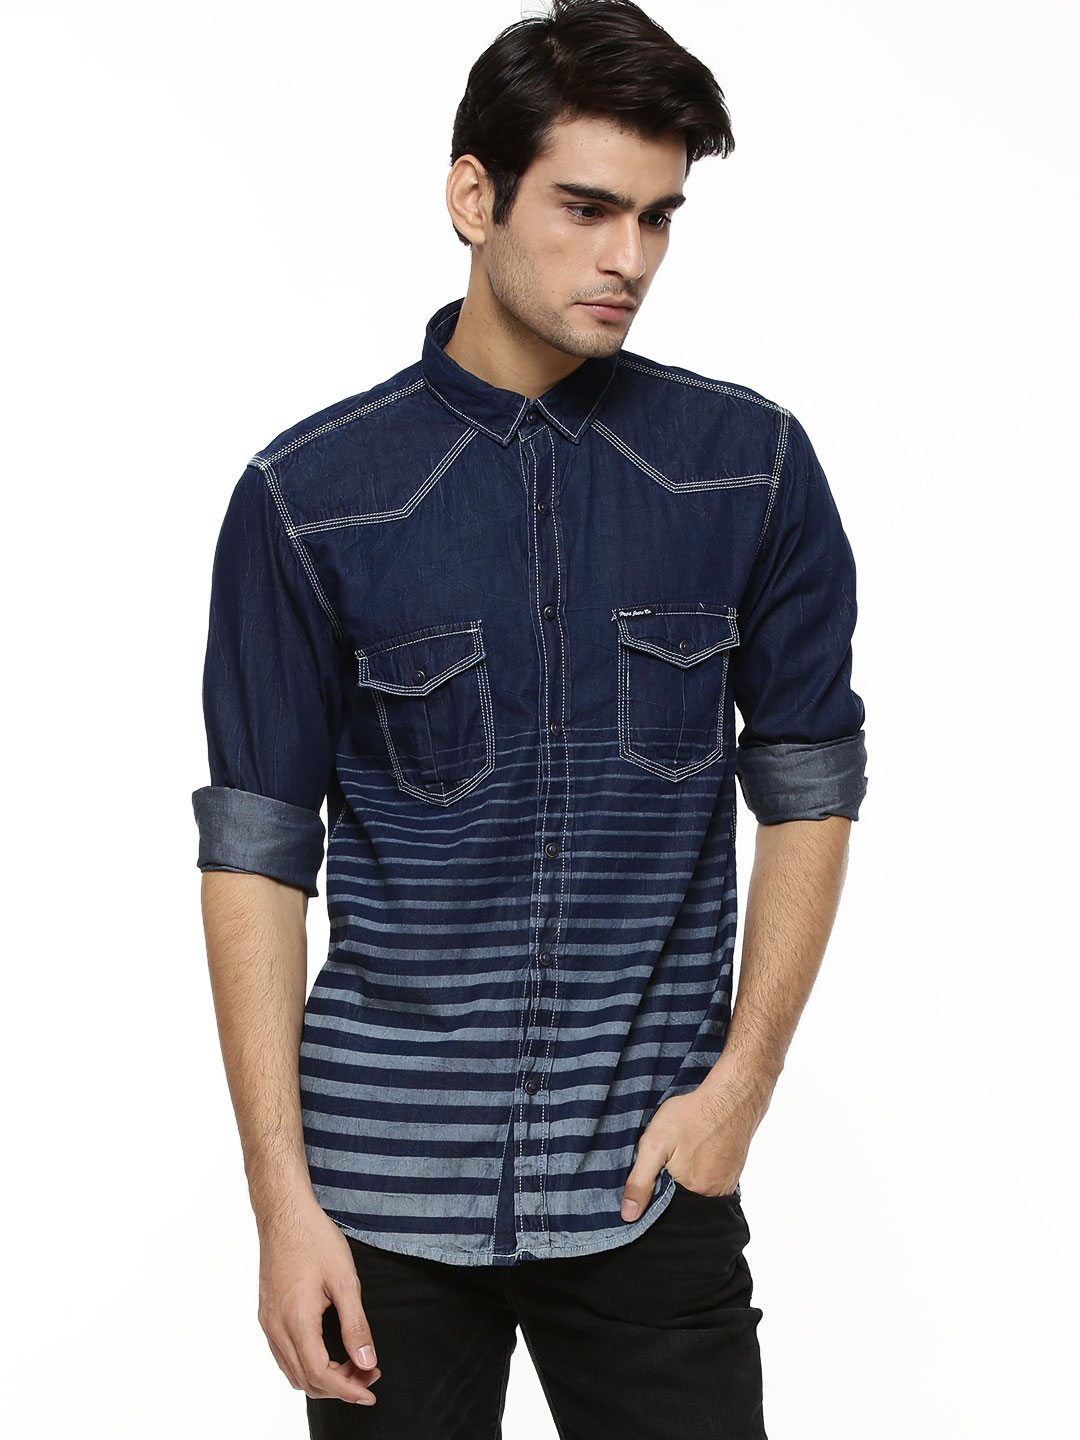 Pepe Jeans Indigo Laser Stripe Shirt With Ombre Effect 1